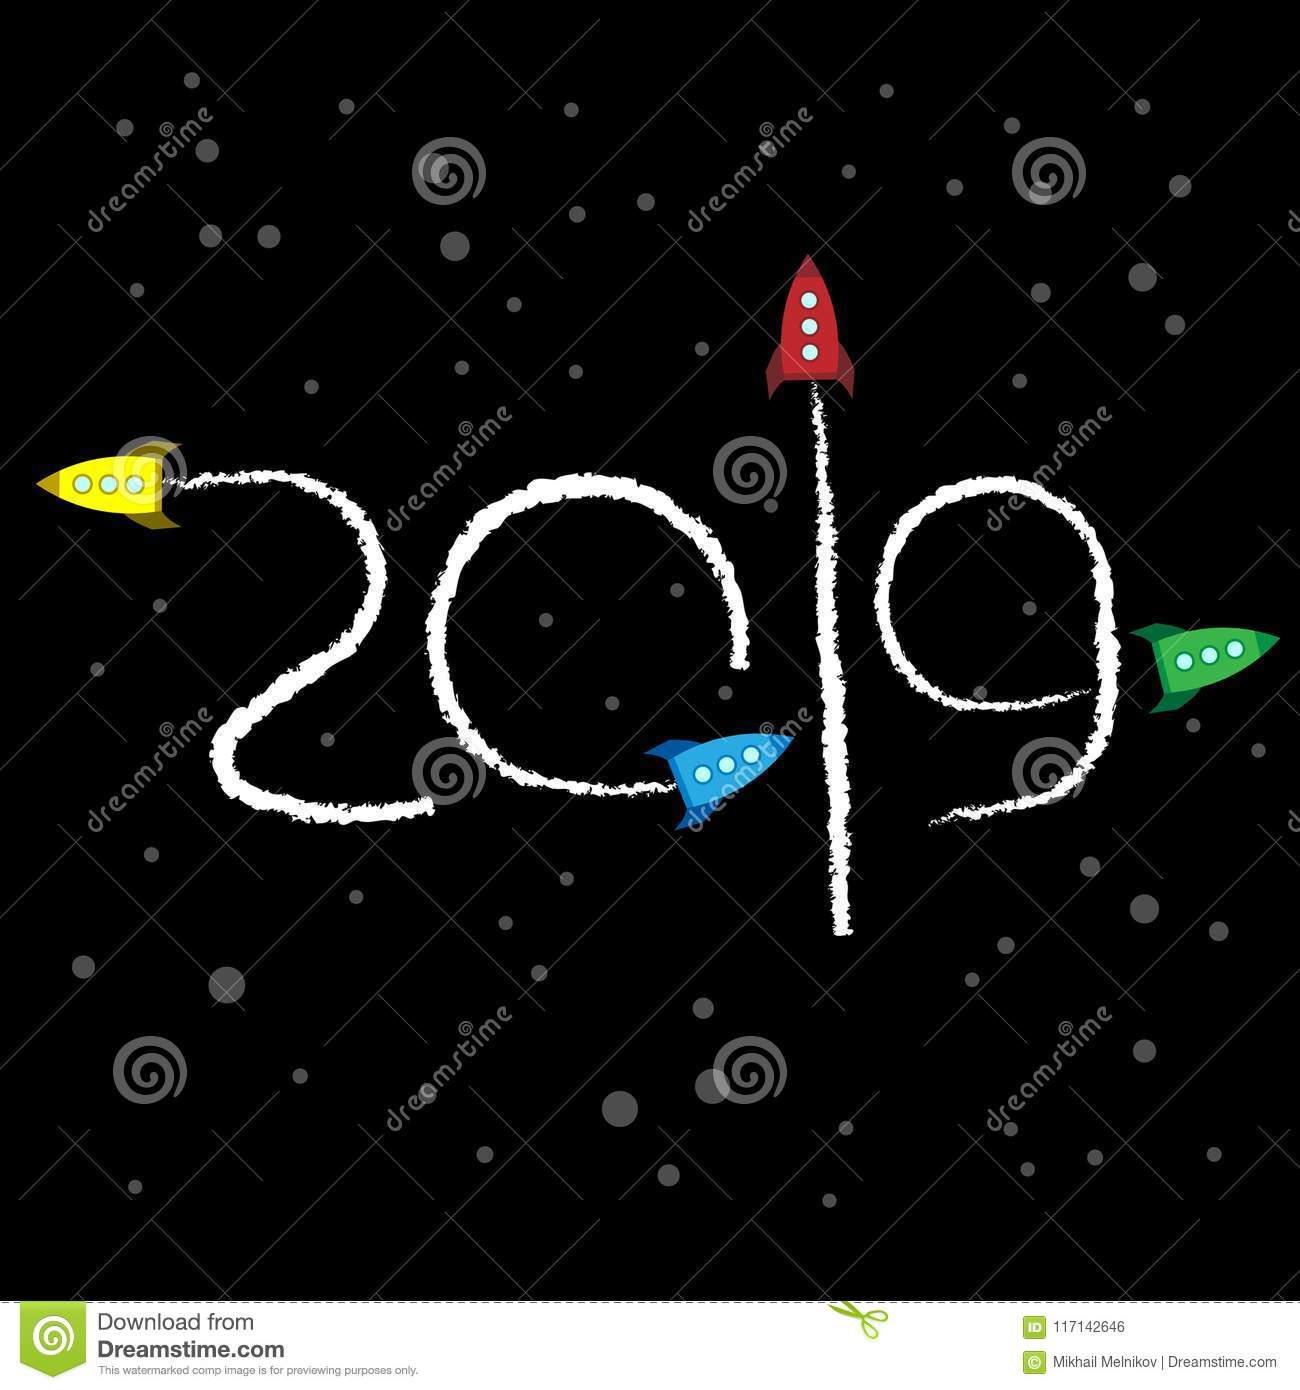 New Year 2019 Concept Space Stock Vector Illustration Of Card